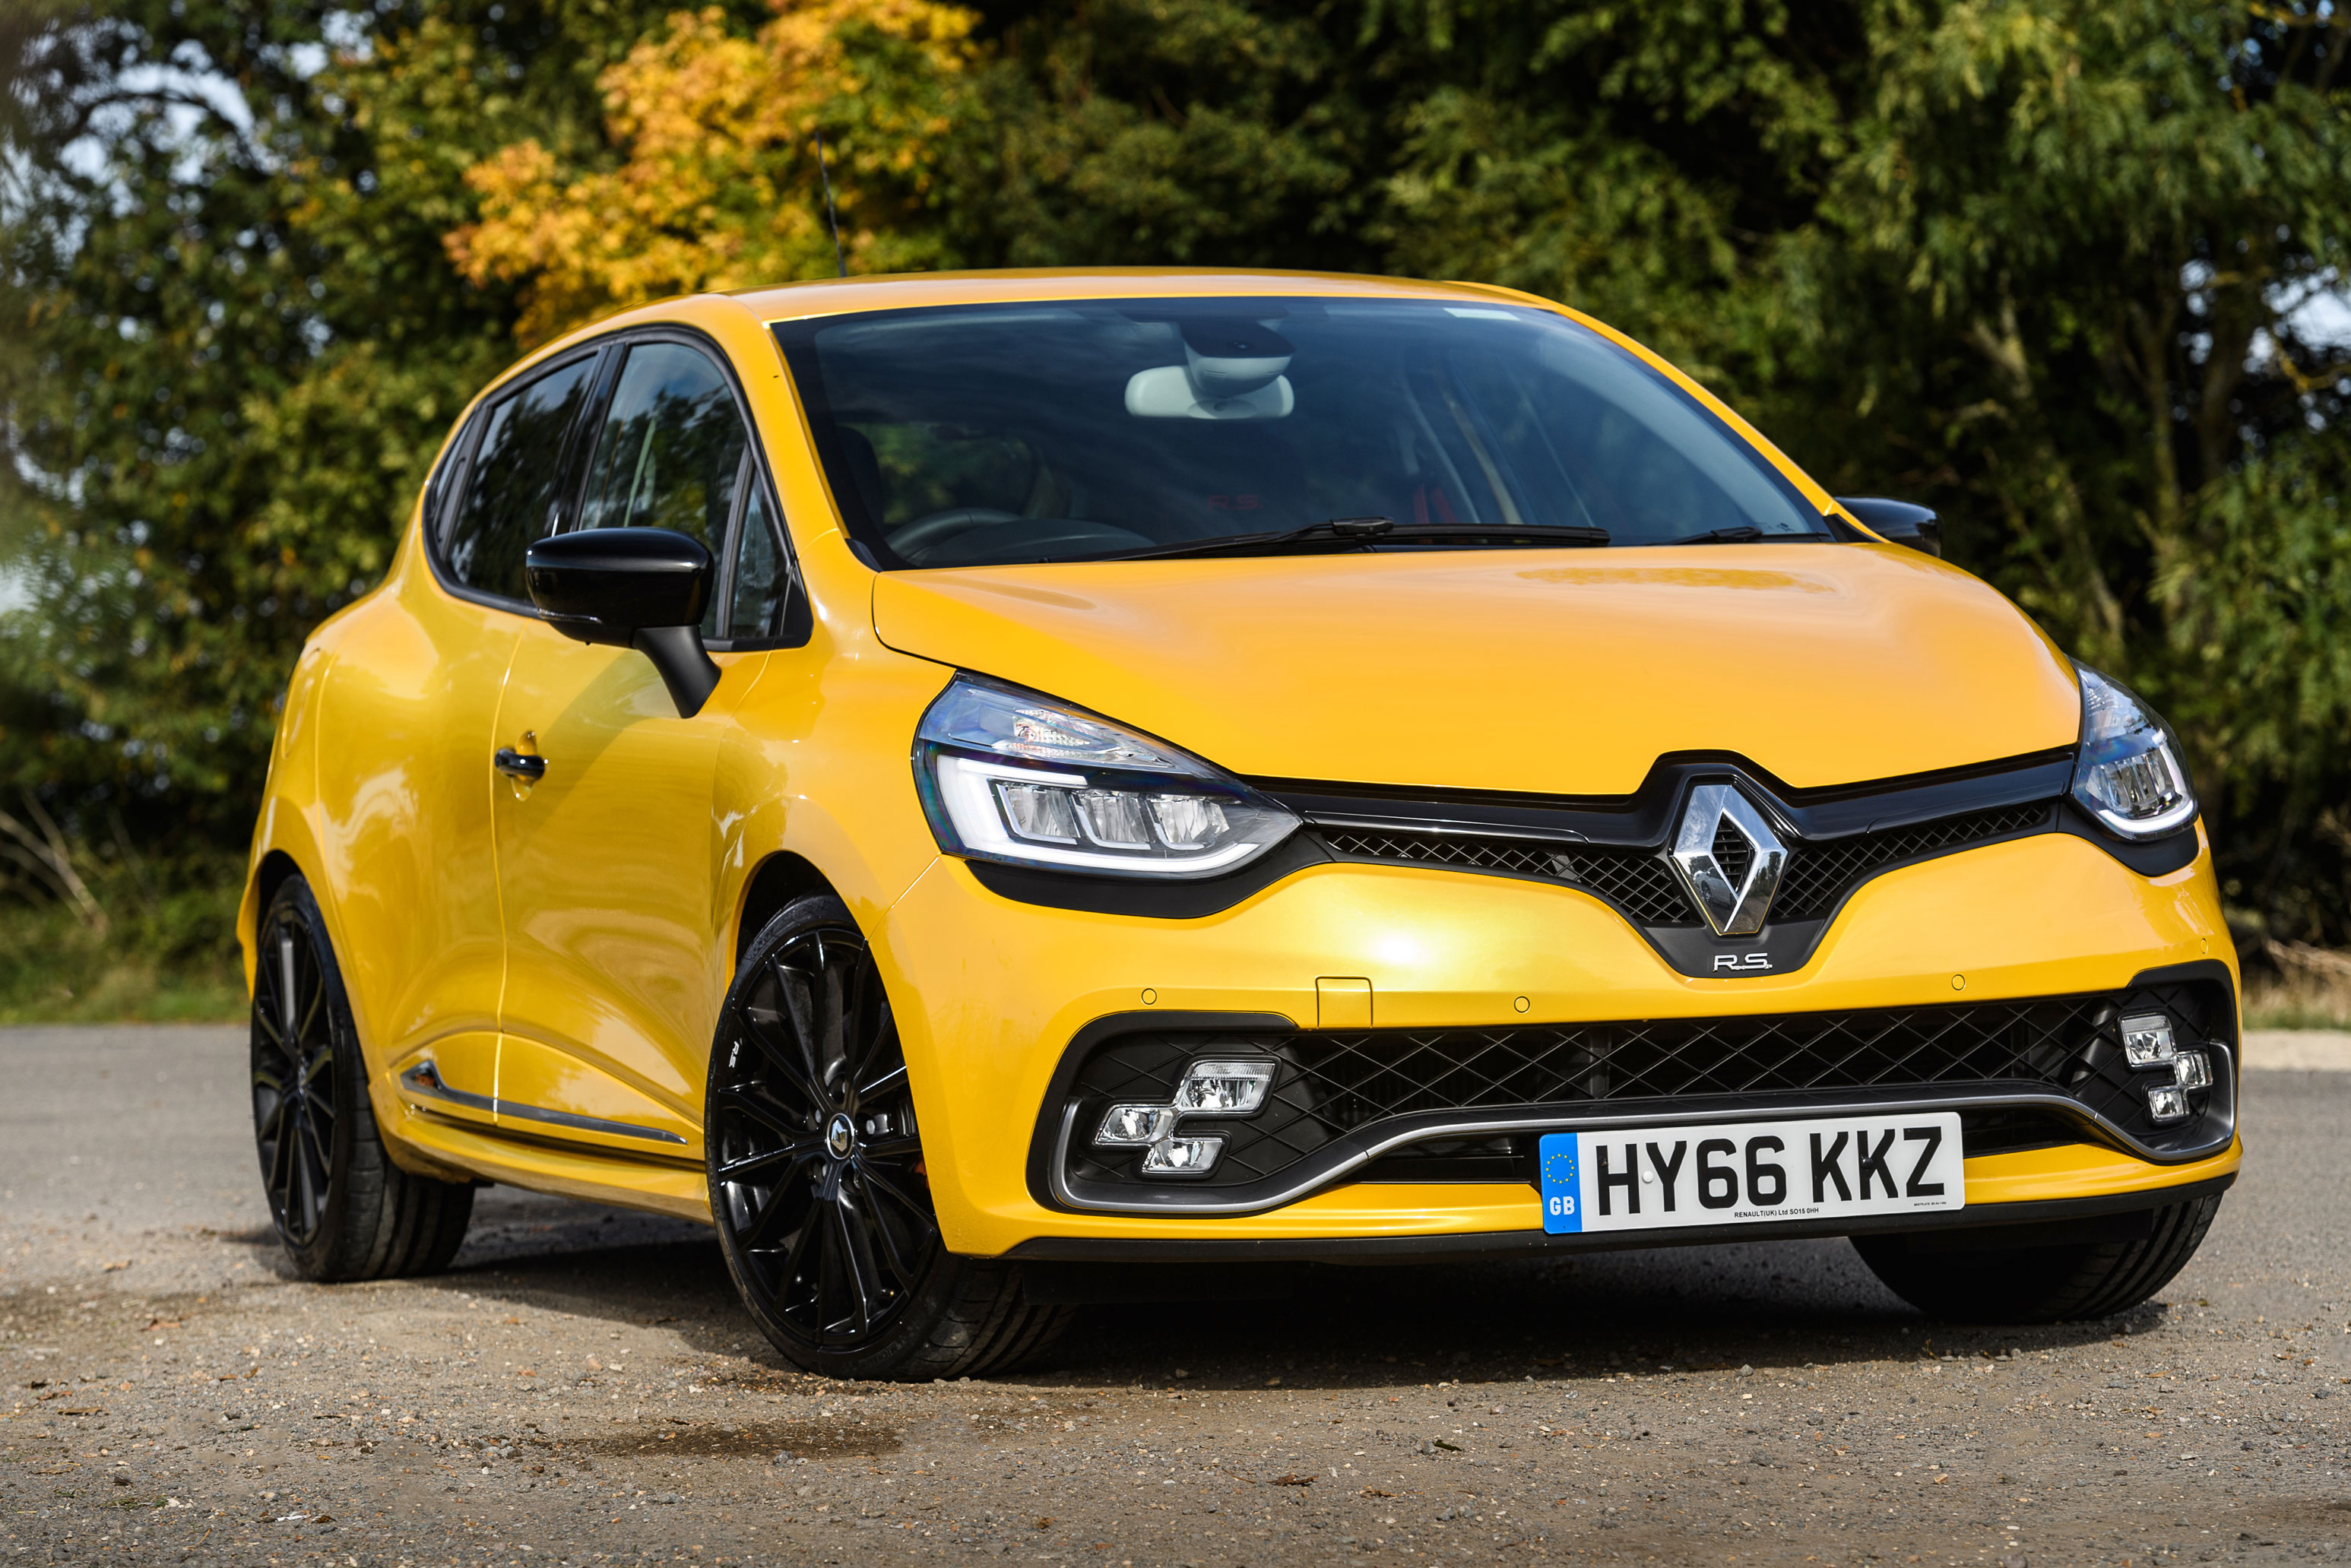 Renaultsport Clio 220 Trophy review - prices, specs and 0-60